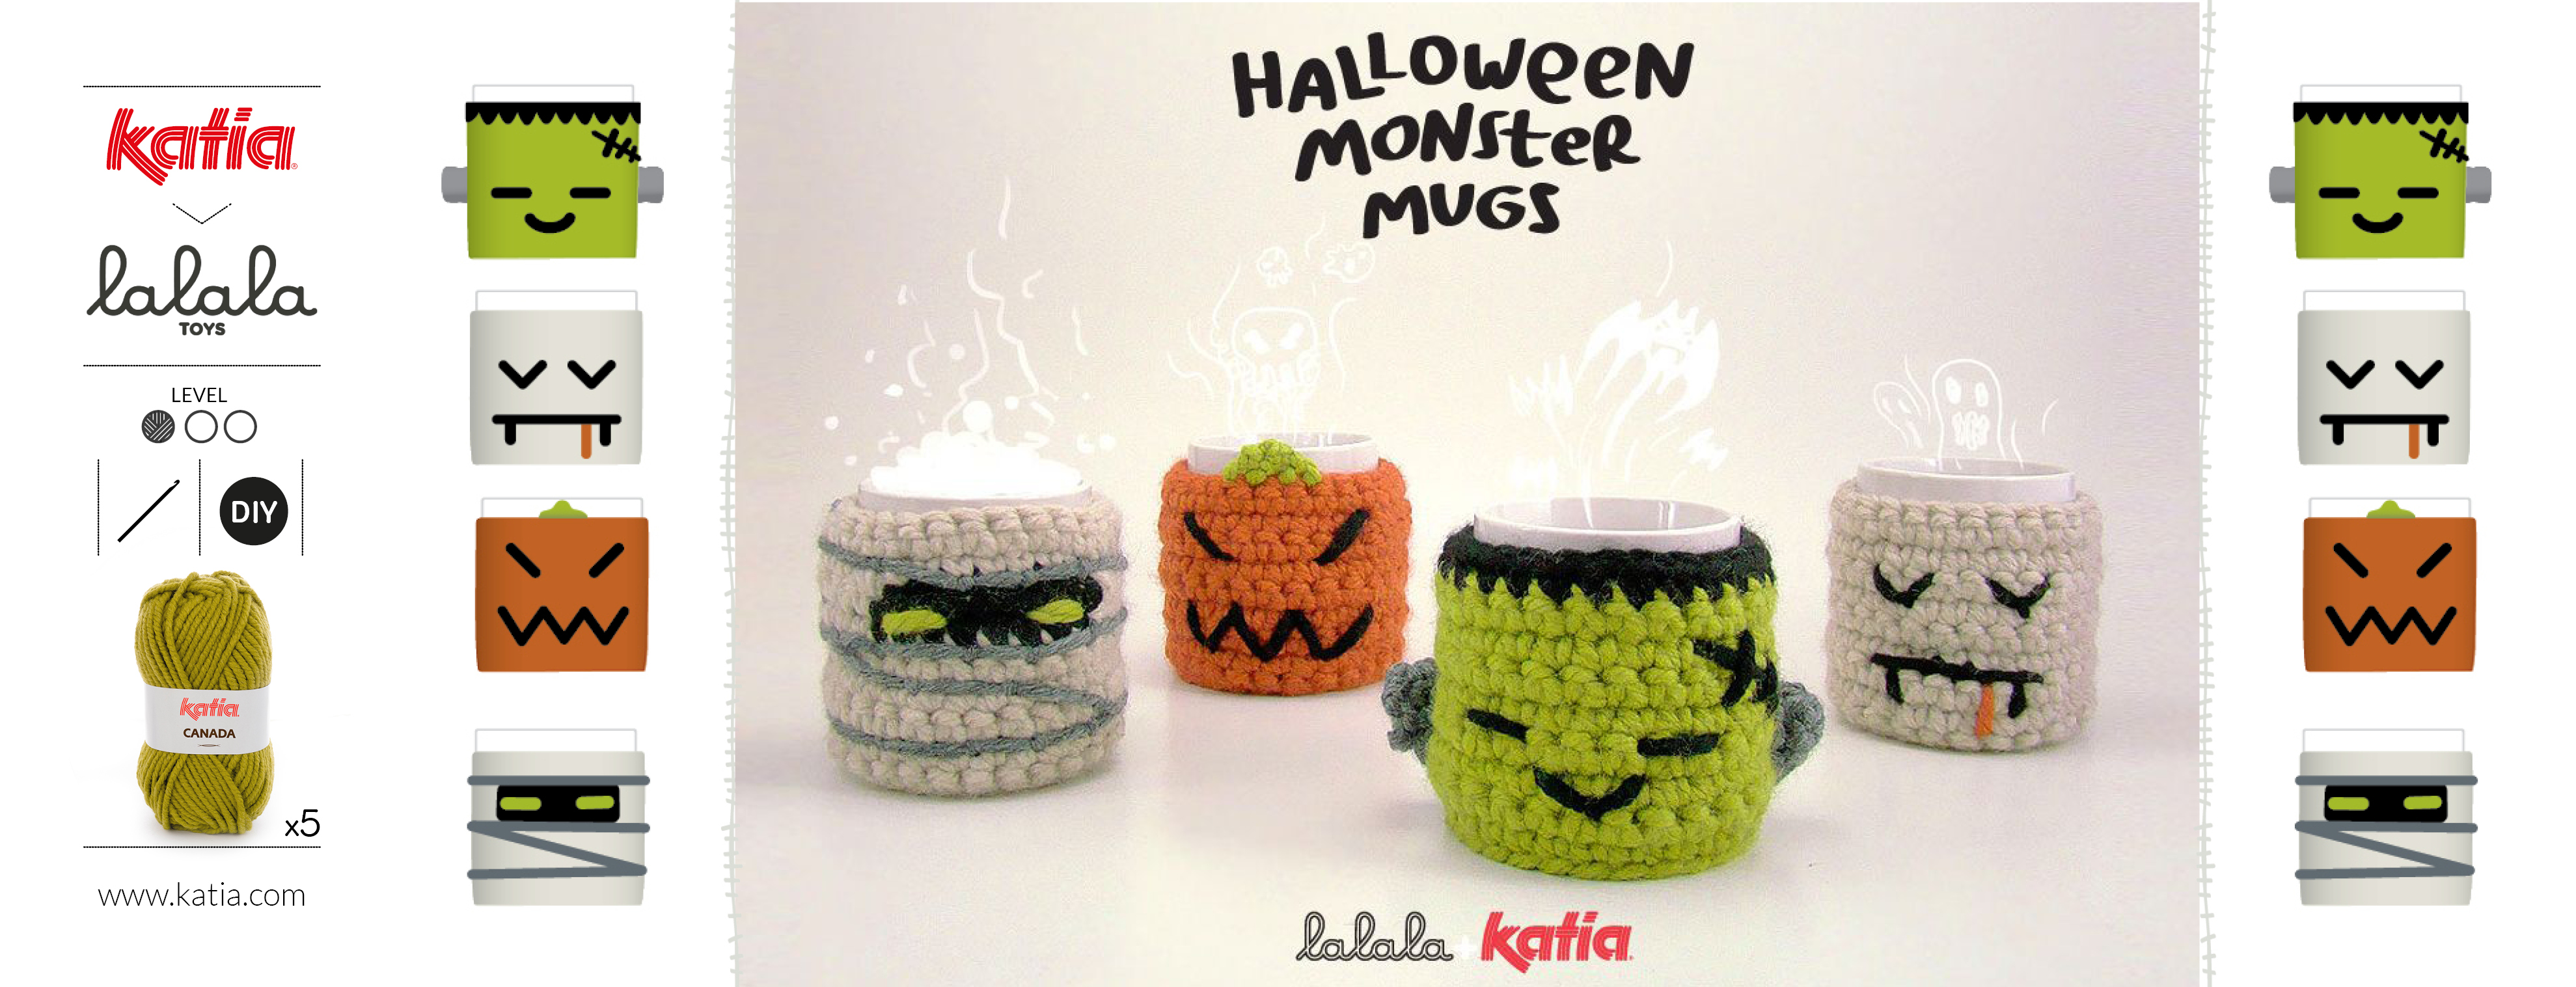 Crochet mug covers